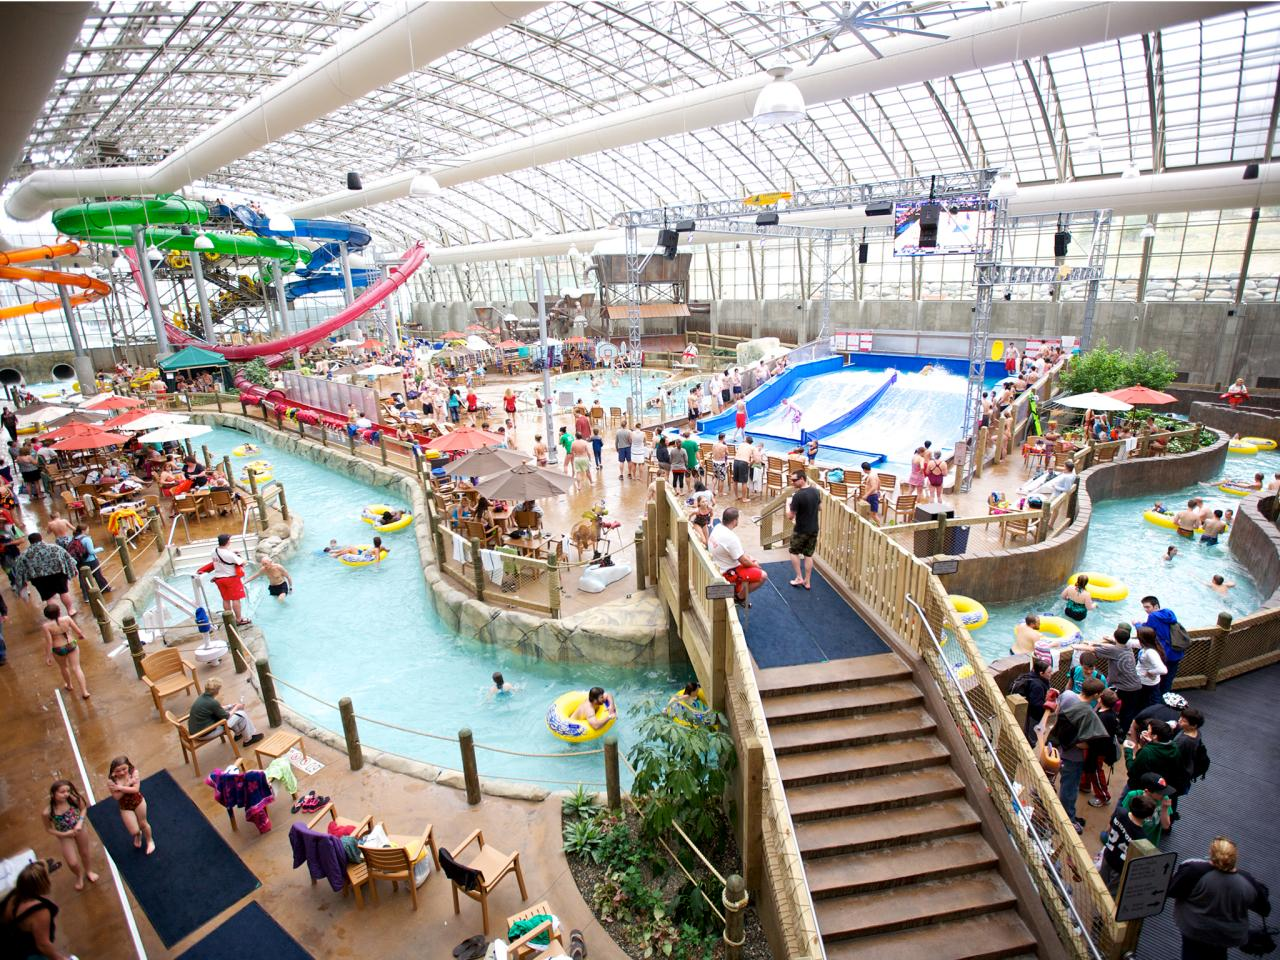 13 Water World Top Us Waterparks Pump House Indoor Waterpark Jpg Rend Tccom 1280 960